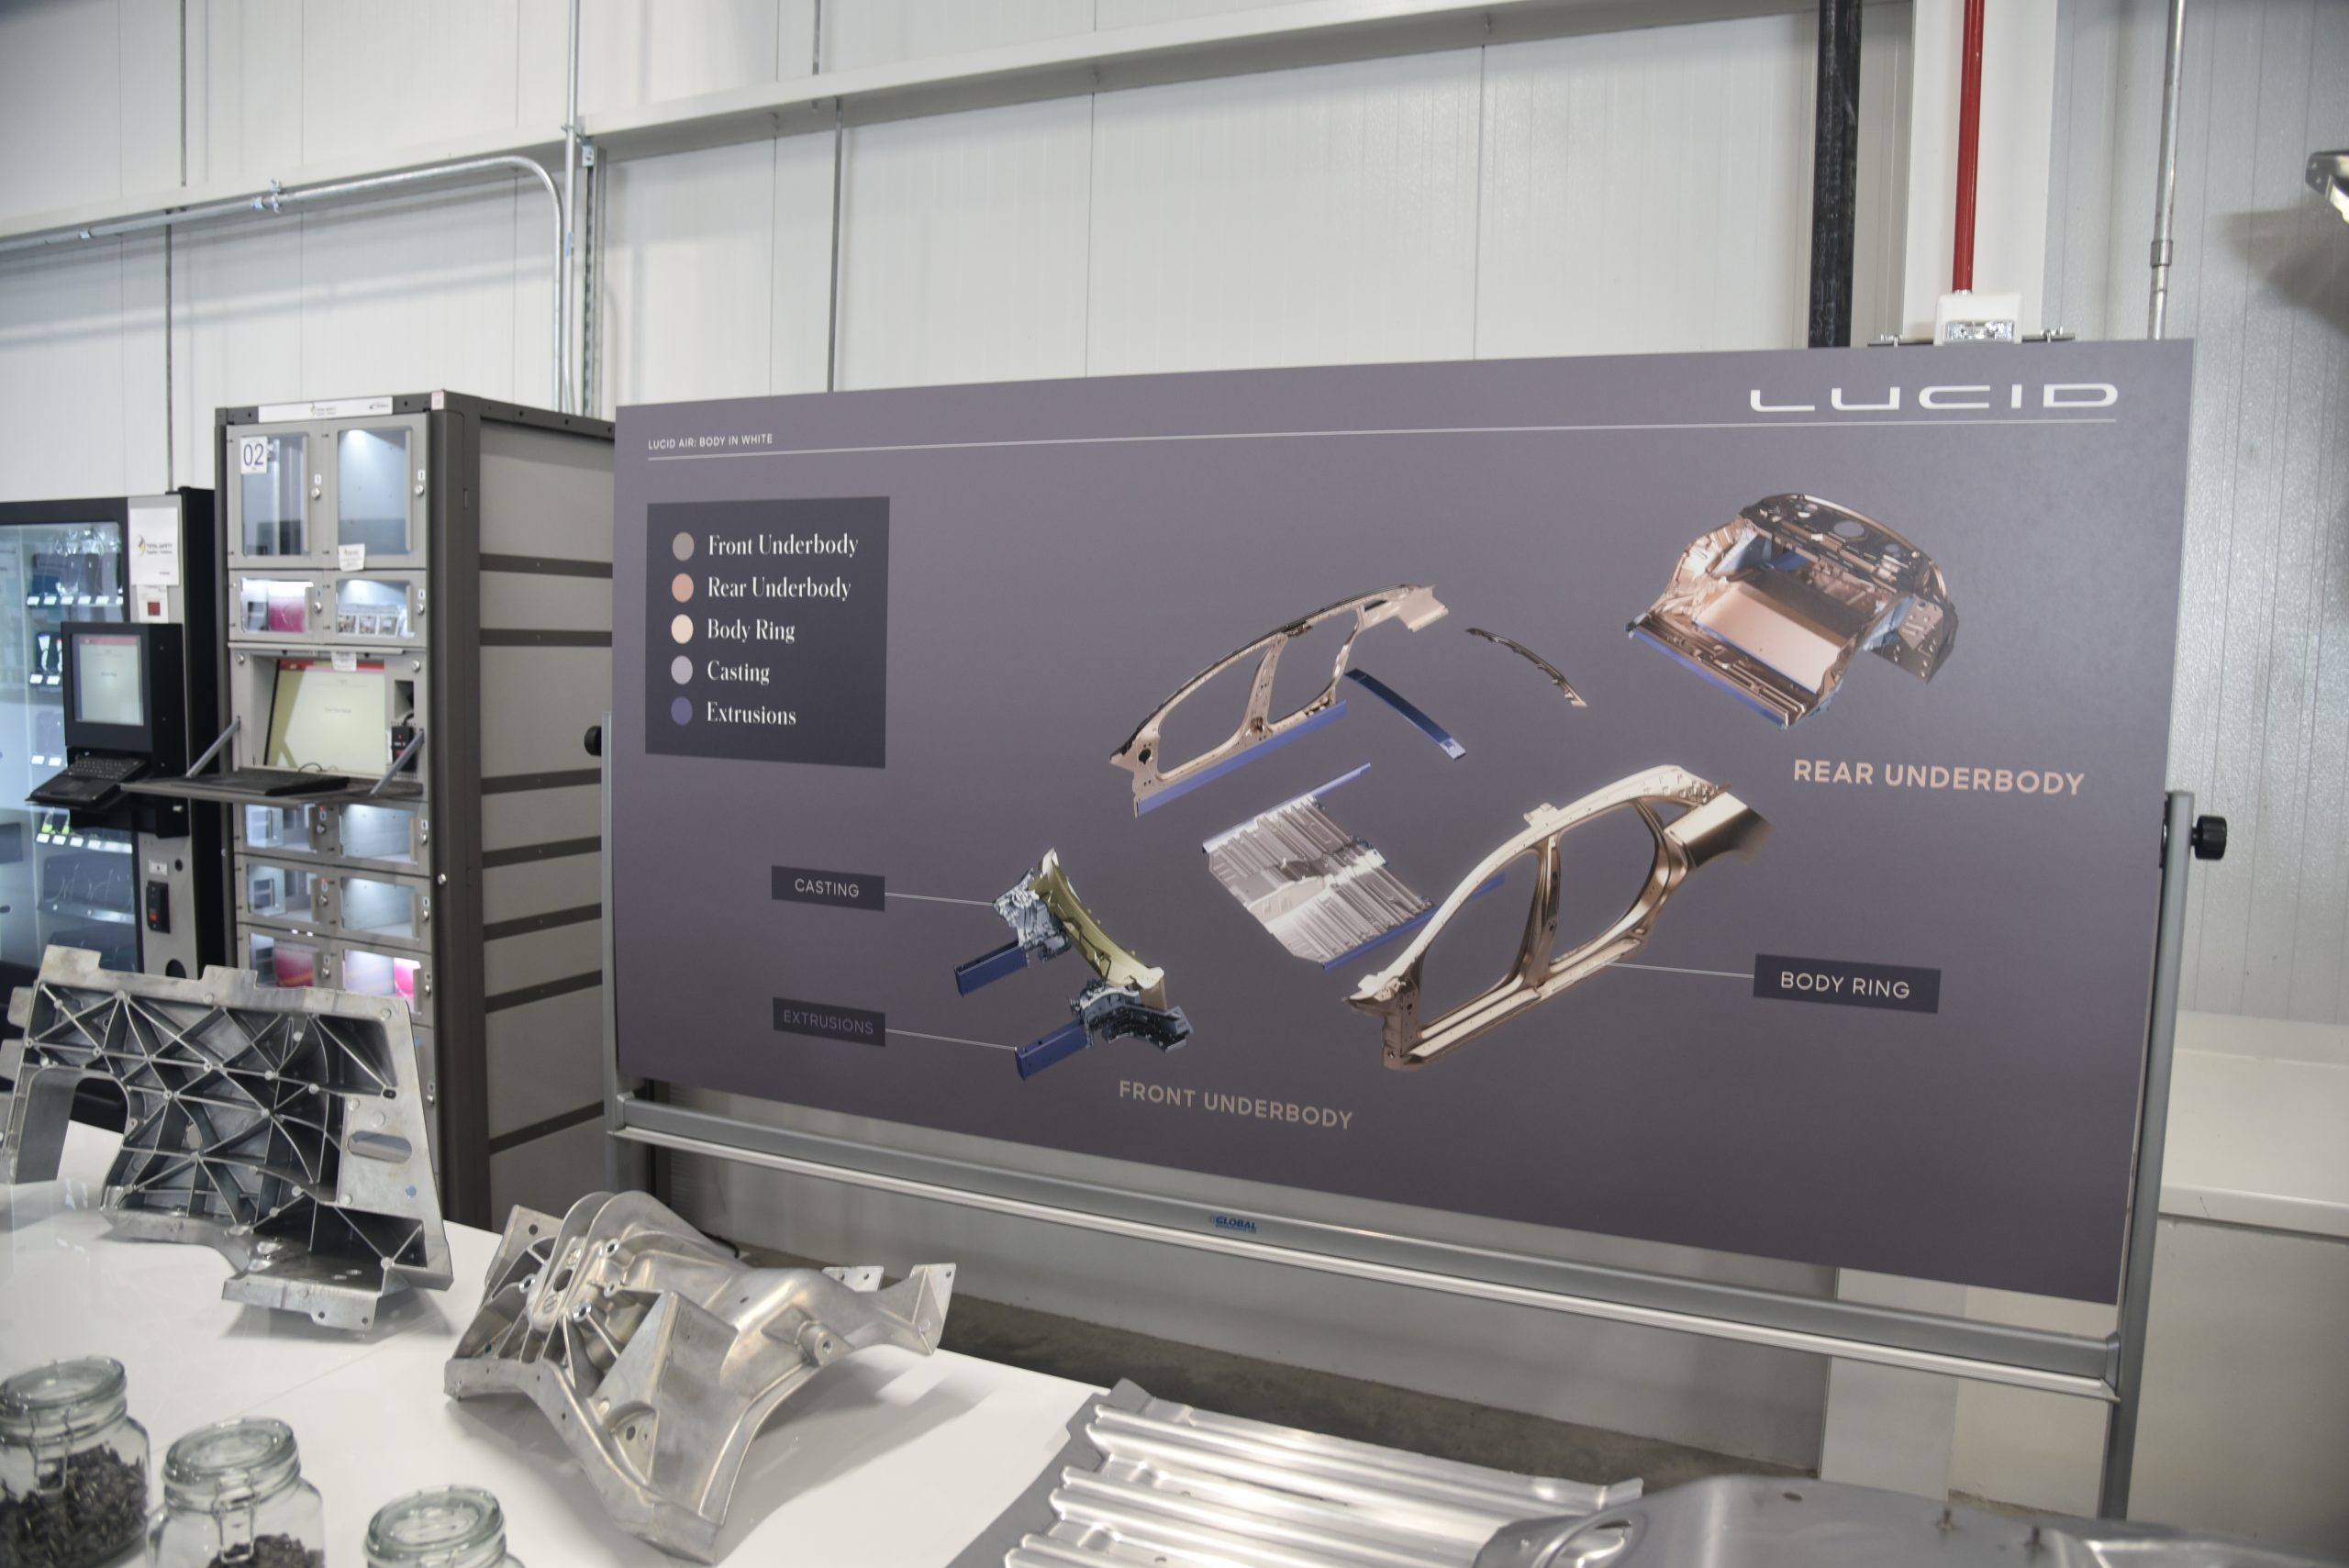 Lucid Air production line assembly diagram